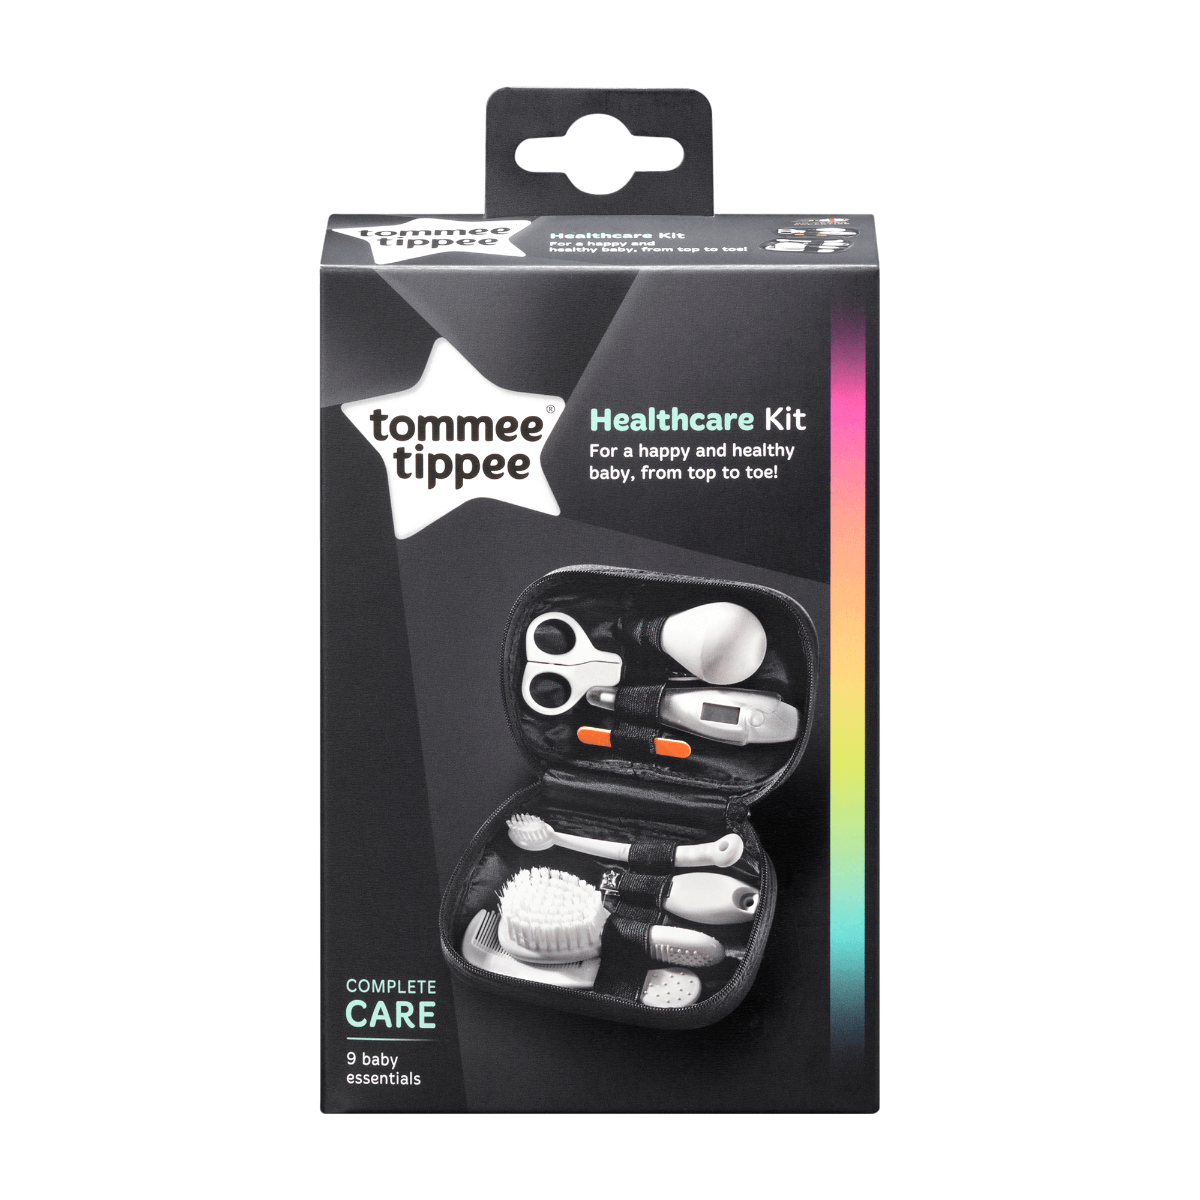 Tommee Tippee Healthcare Kit in packaging